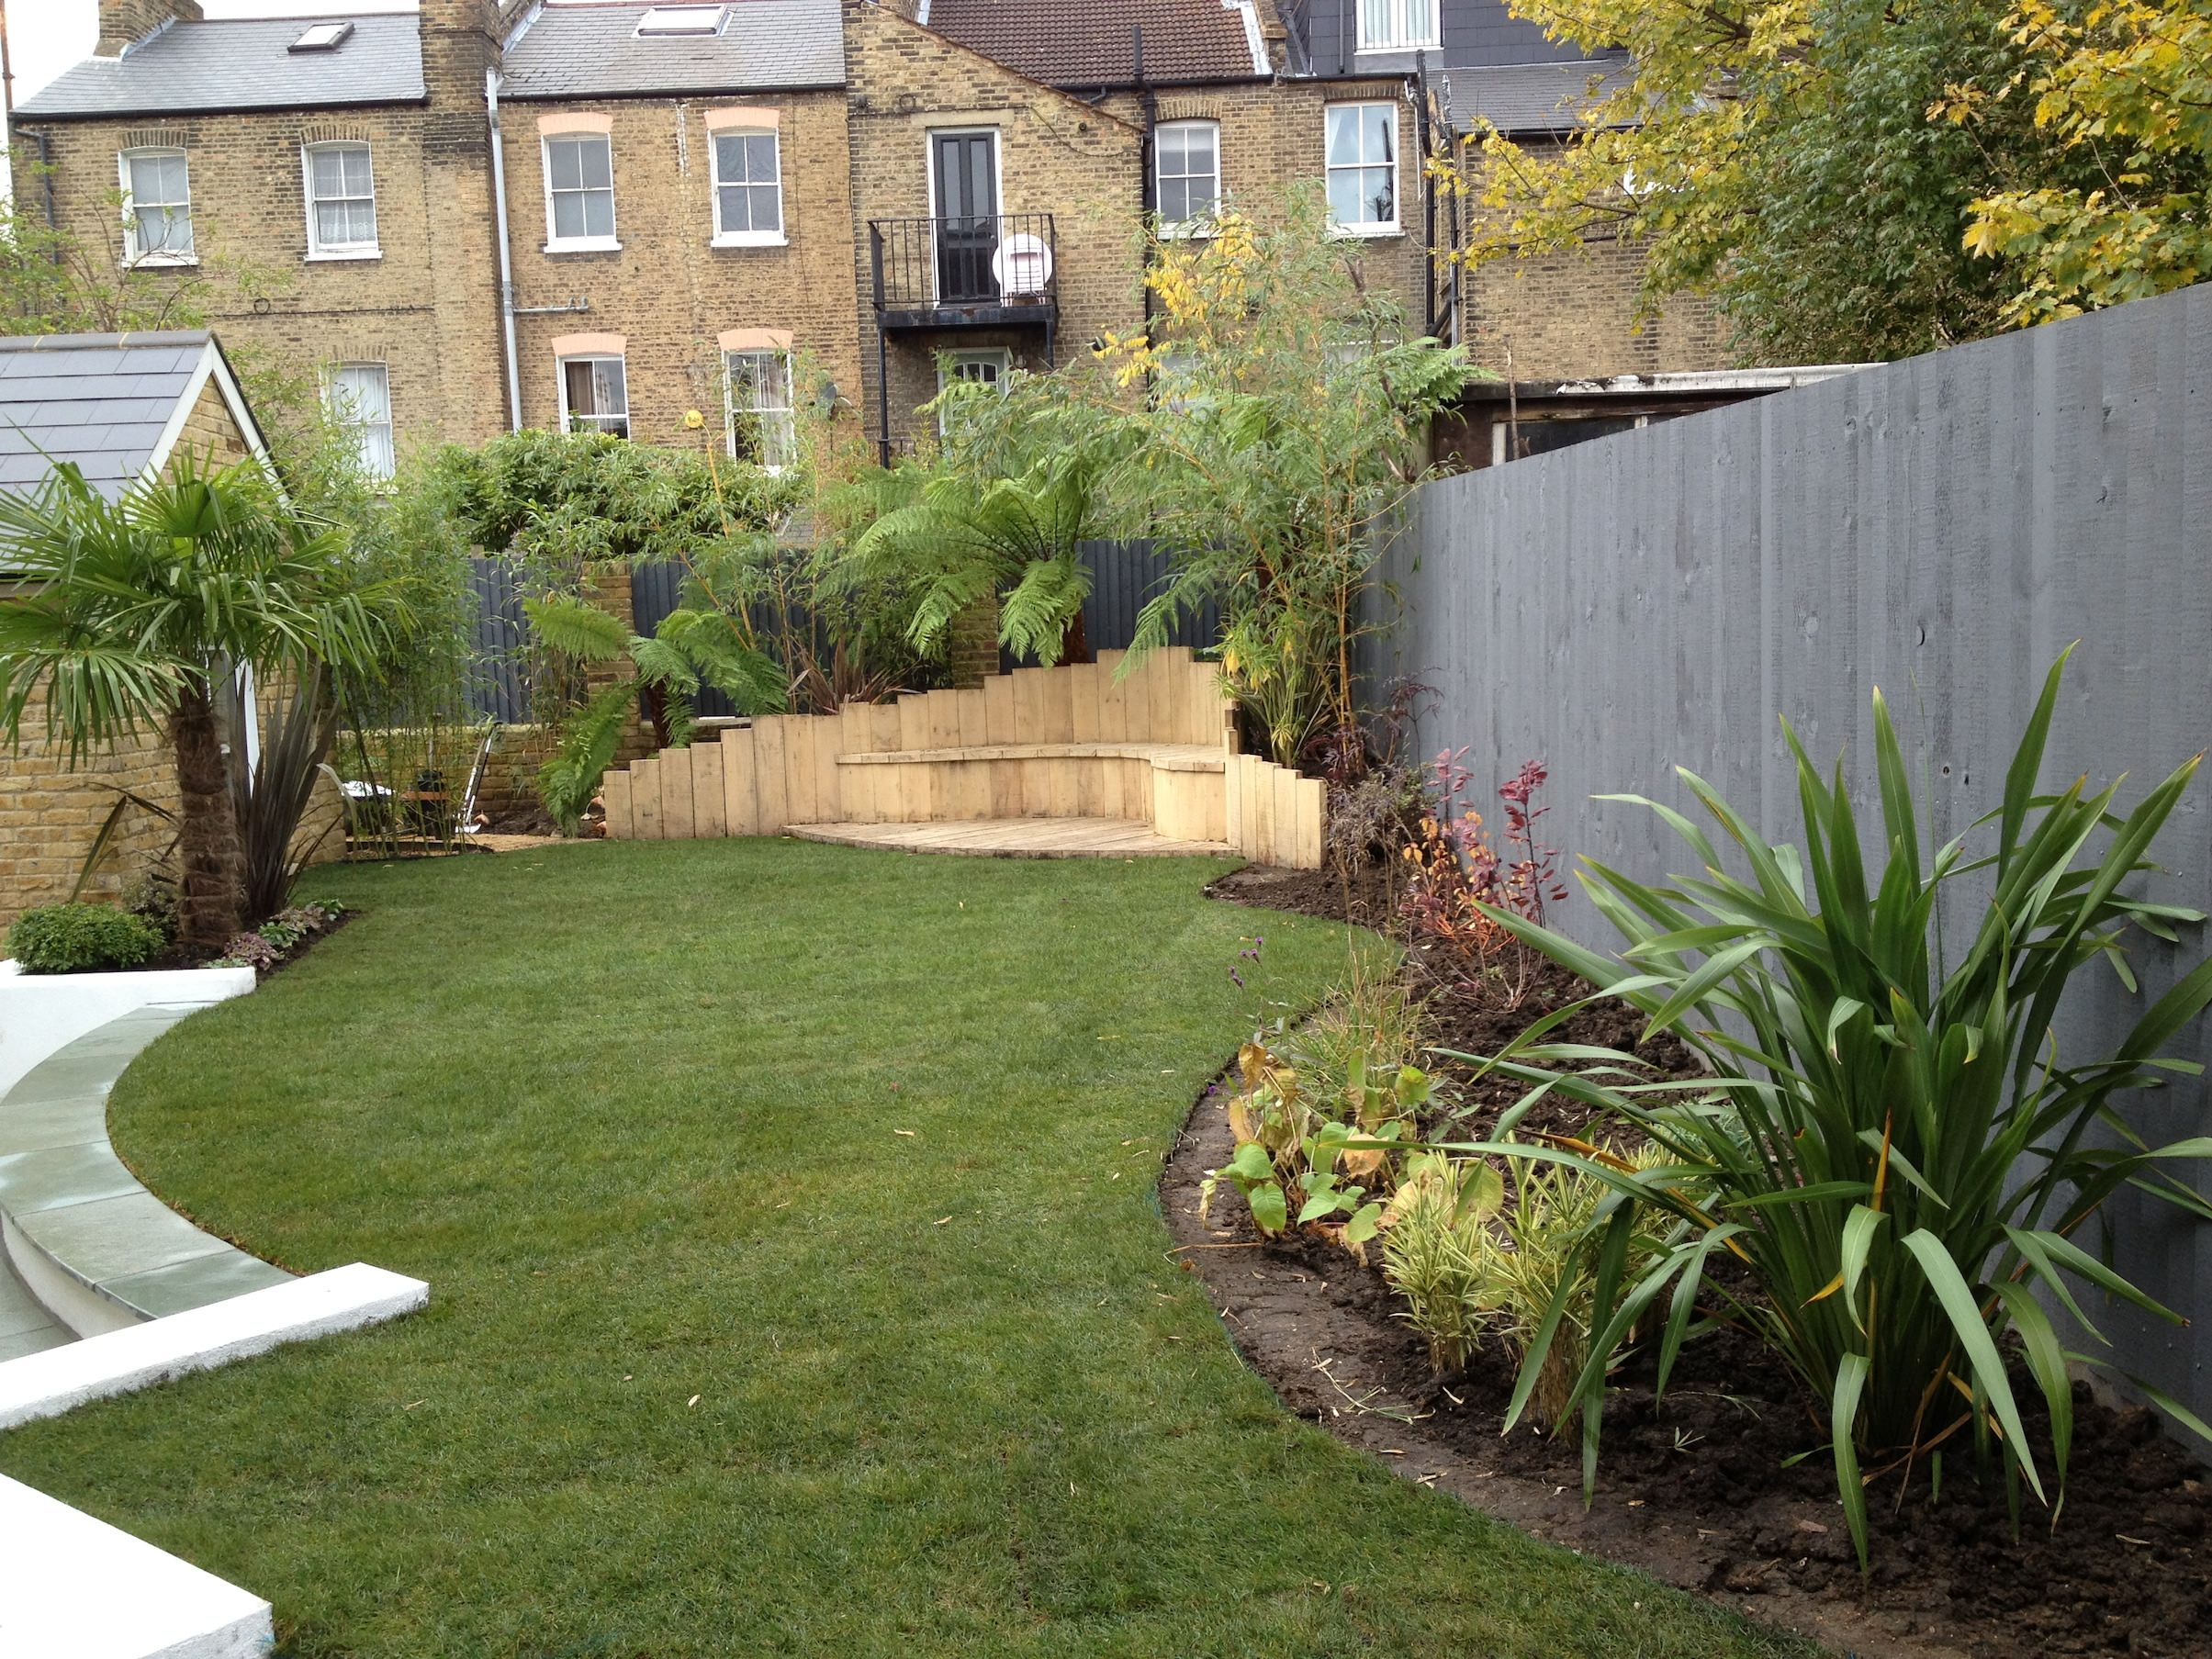 Low maintenance garden designs garden club london for Easy garden design